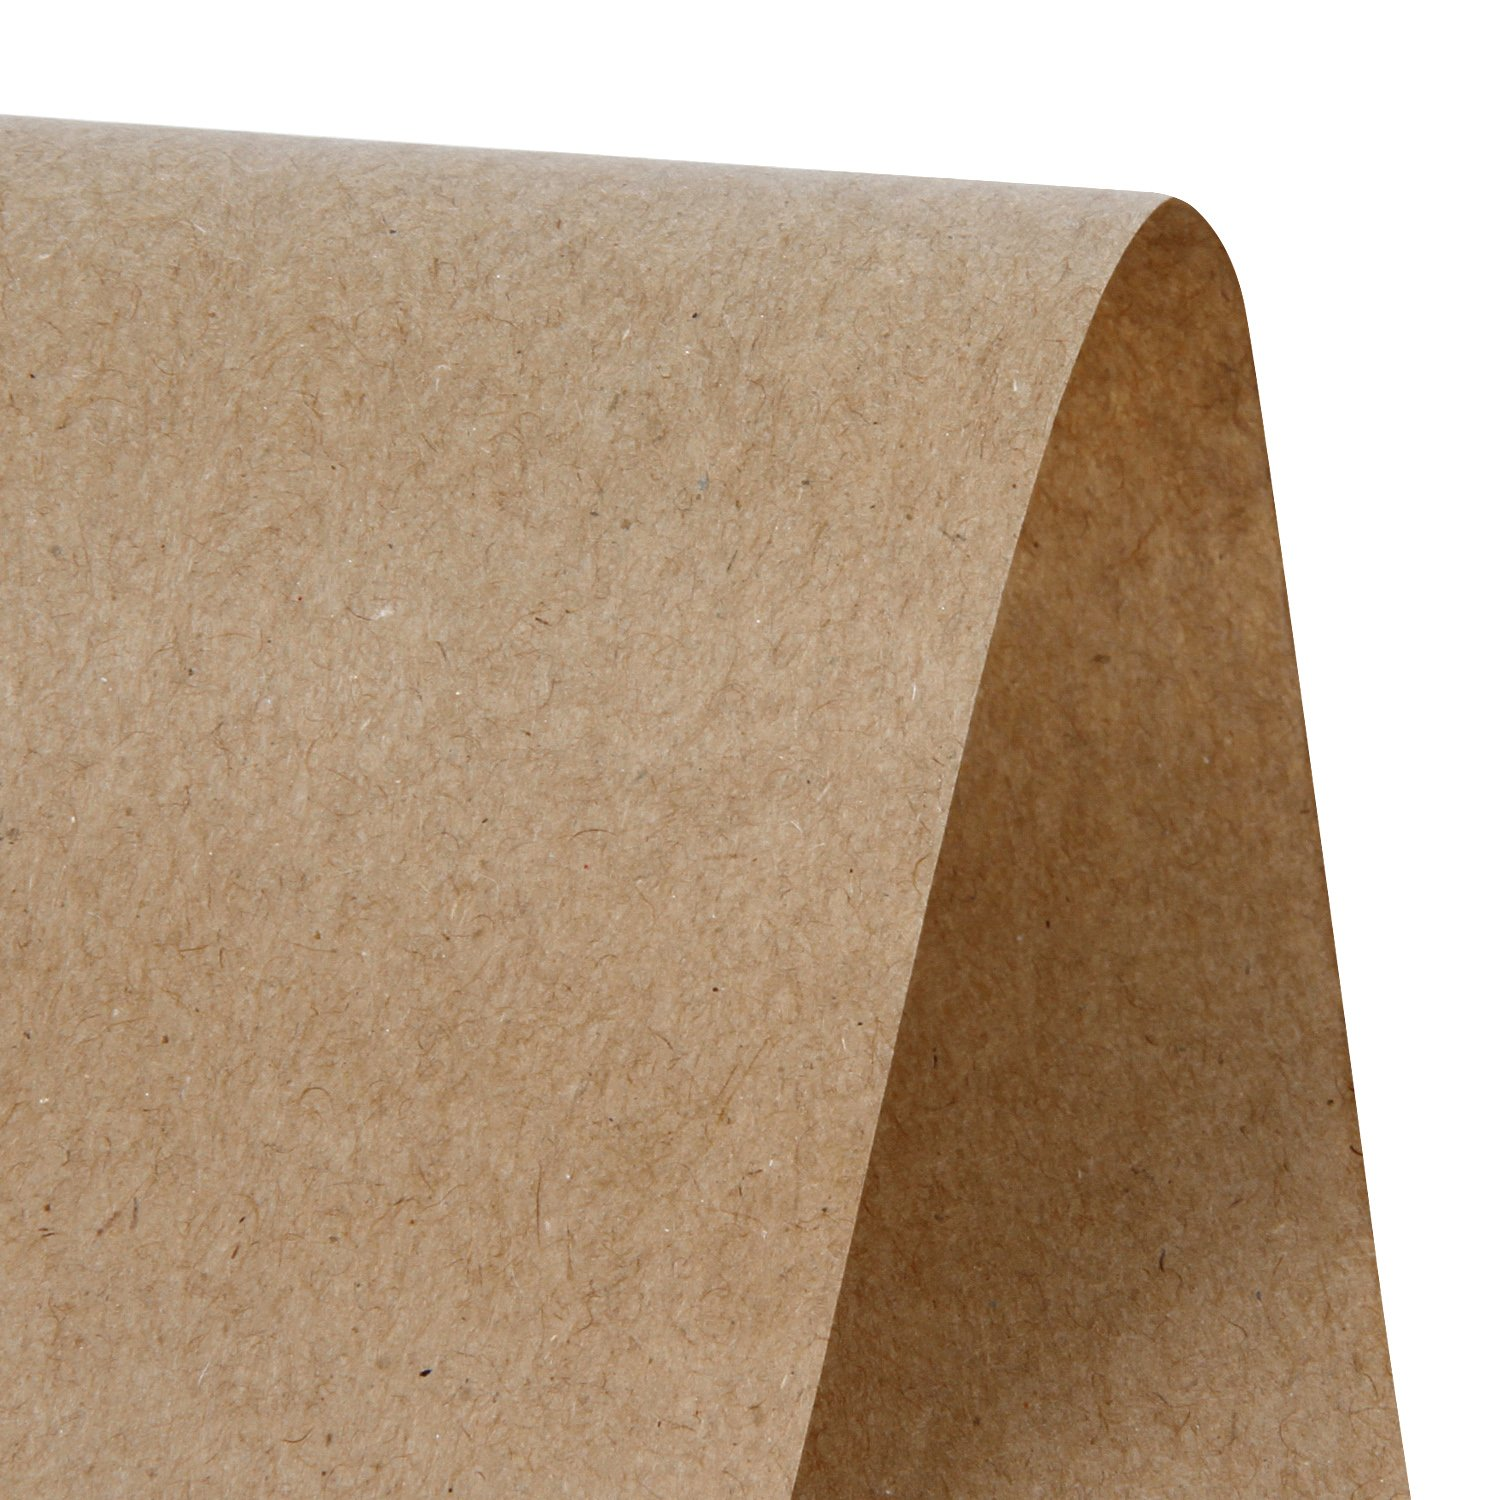 Shipping 30.5 cm x 30 M Small Gift Wrapping Art Postal RUSPEPA Brown Kraft Paper Roll Natural Recycled Paper Perfect for Crafts Packing Dunnage /& Parcel